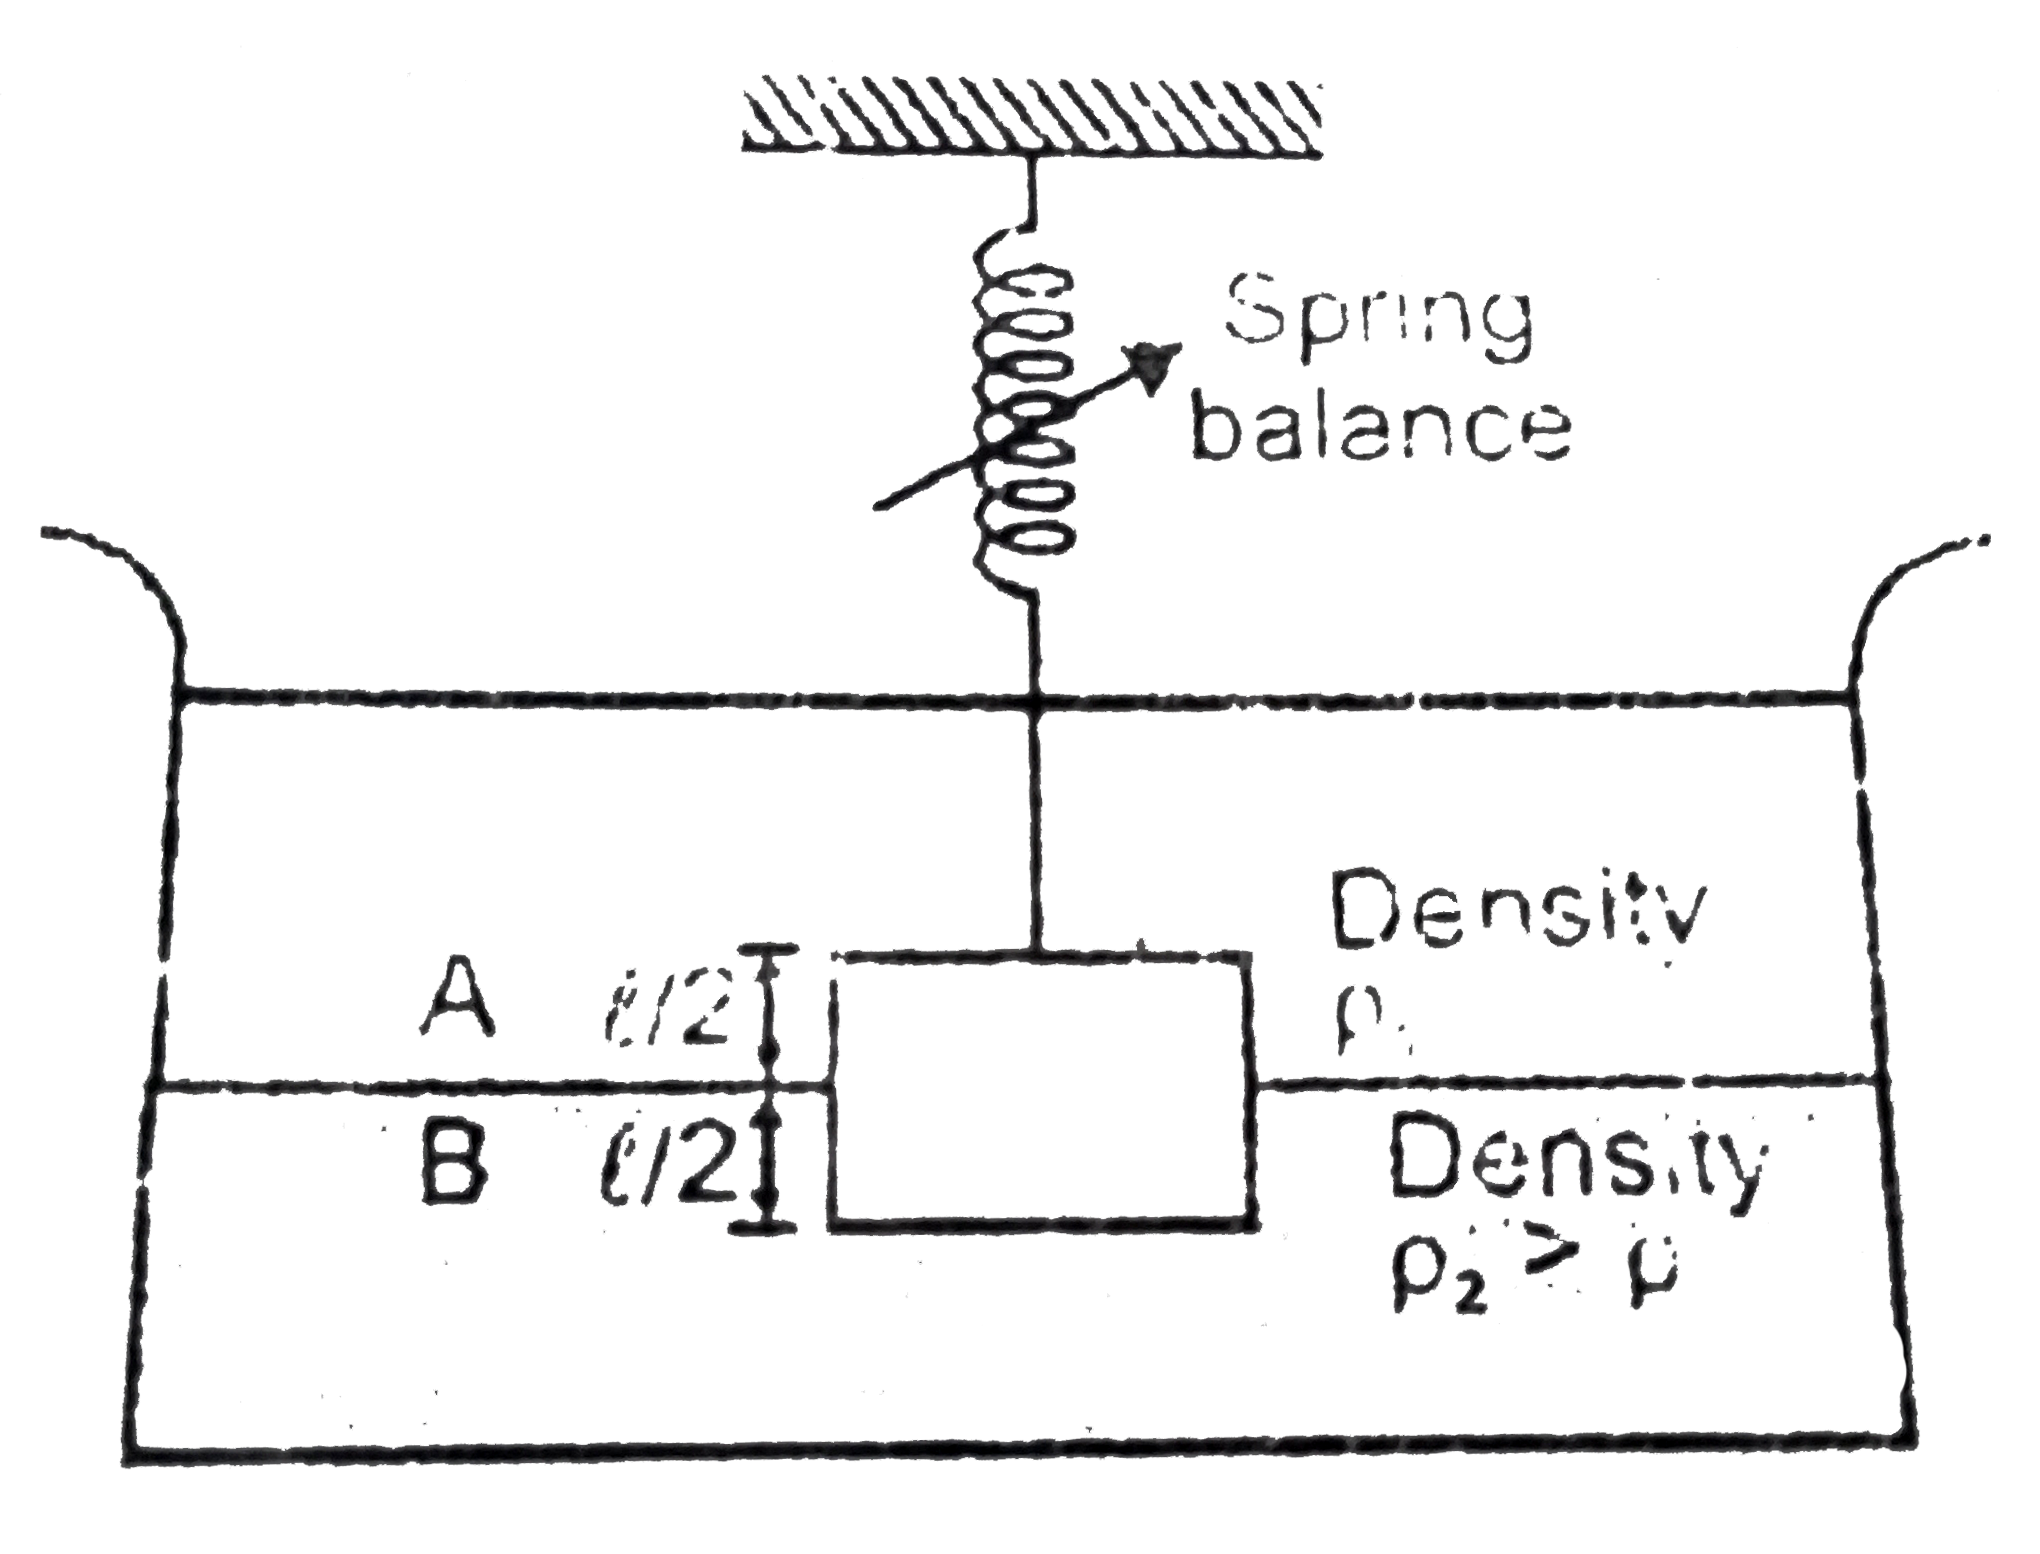 if the block is weighted in air, the reading of the spring balance will be :